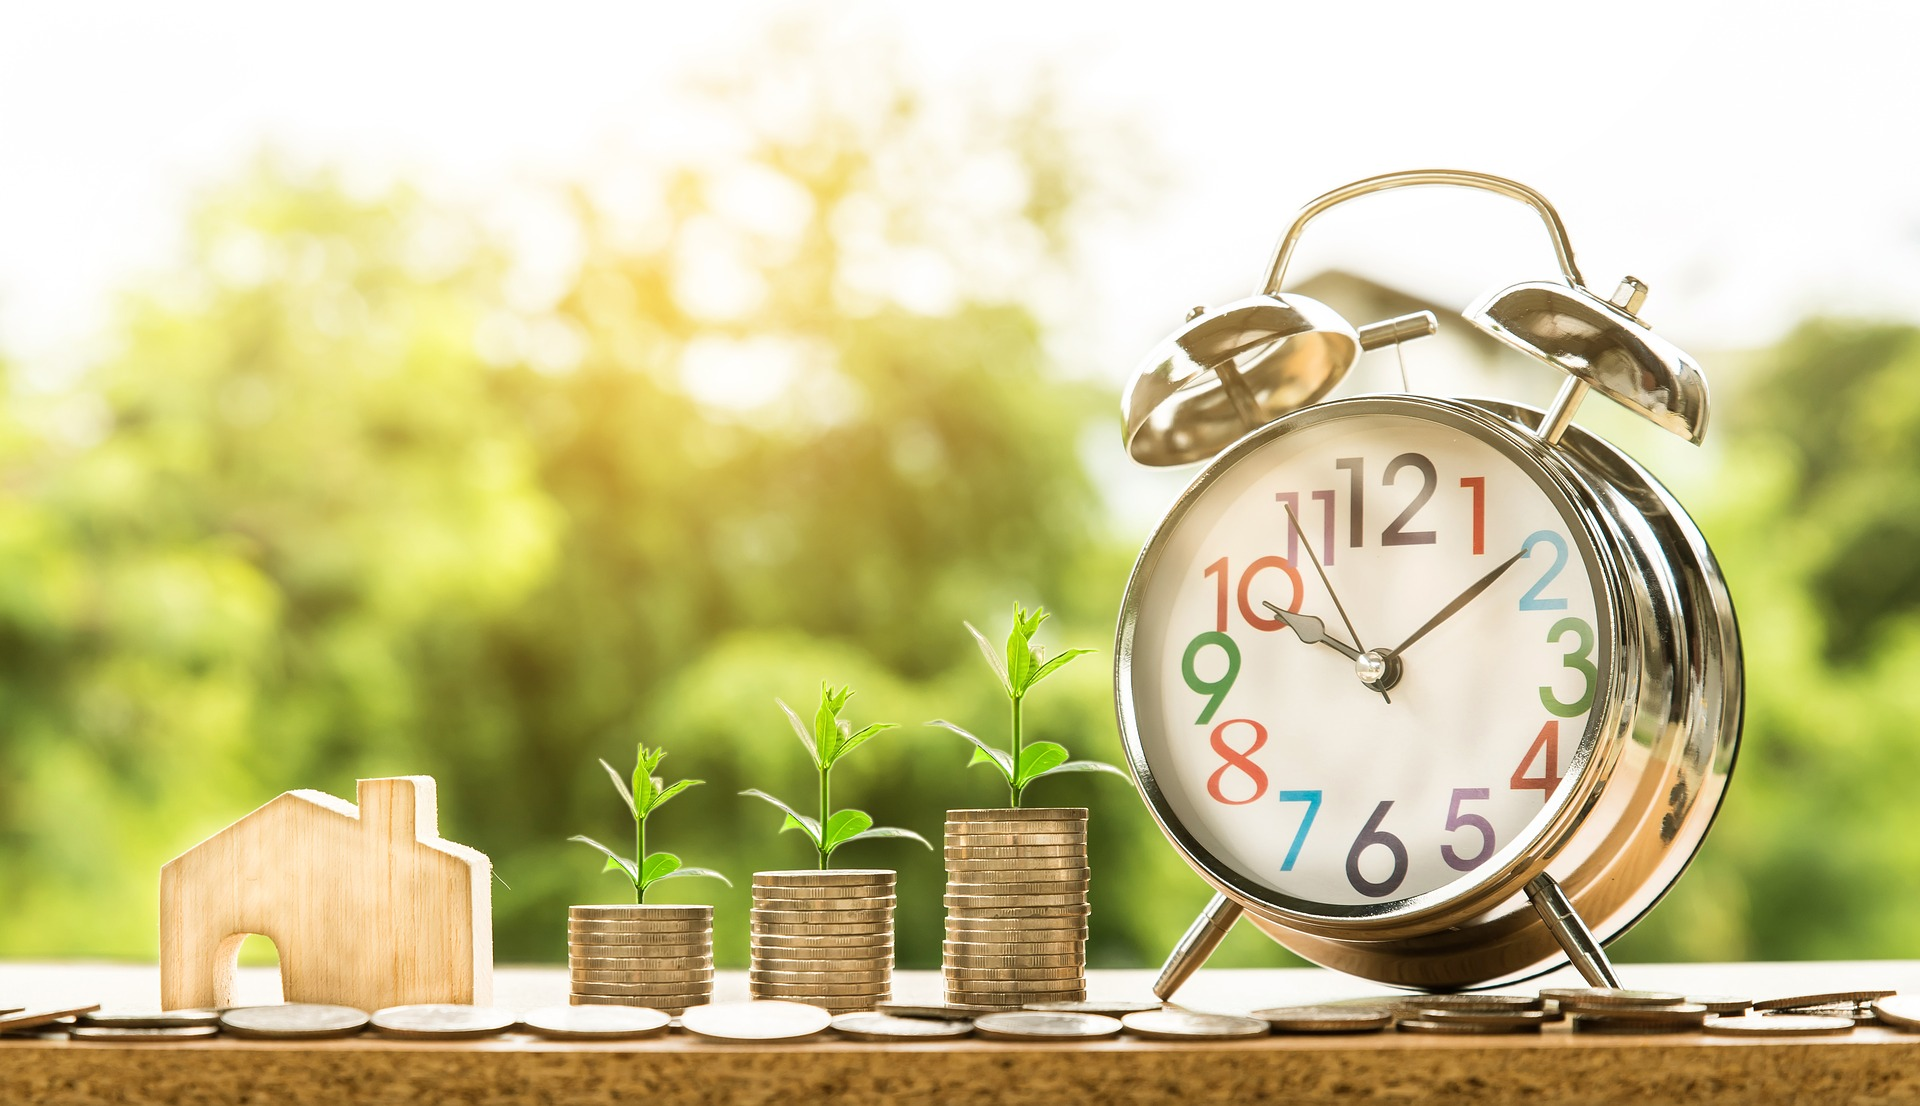 Real Estate Savings With A Broker